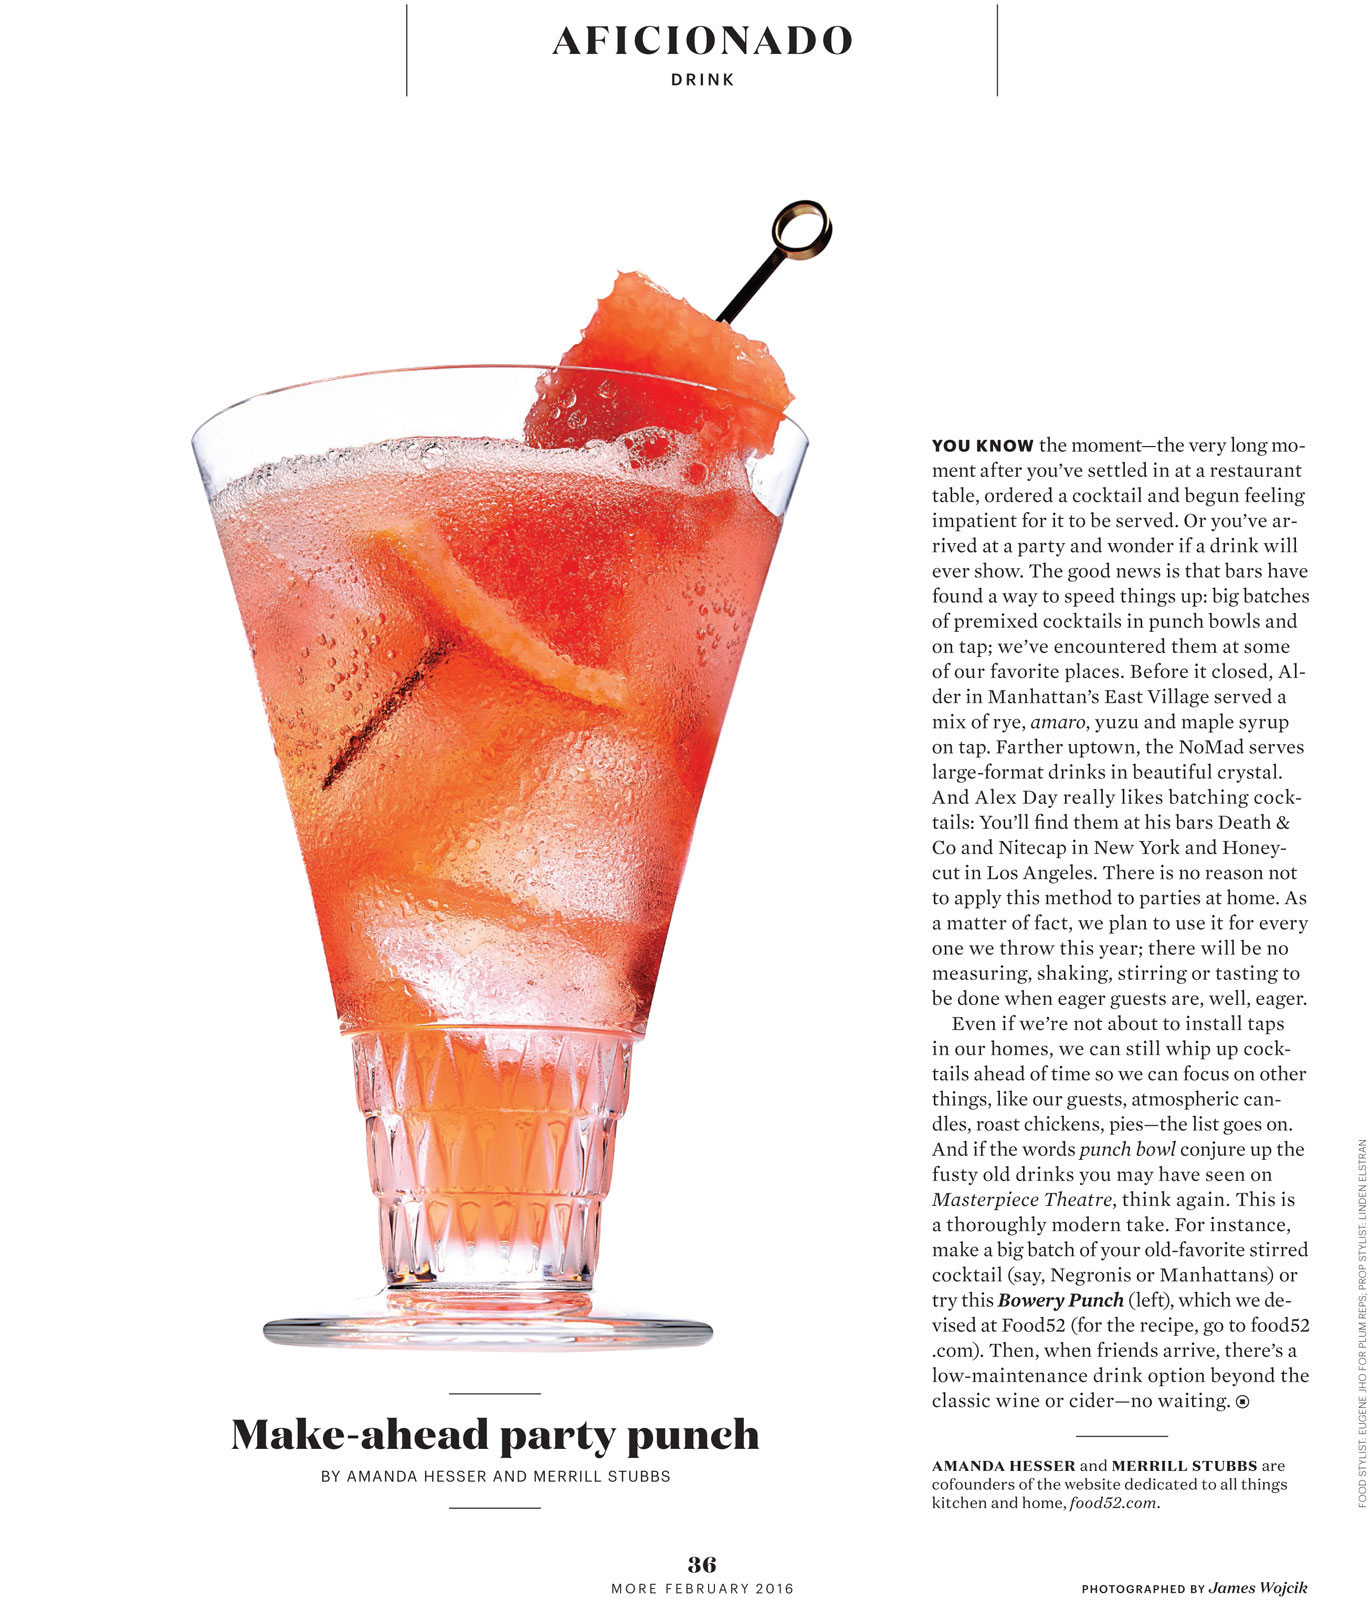 036-MR0216-AFI_Drink_Punch